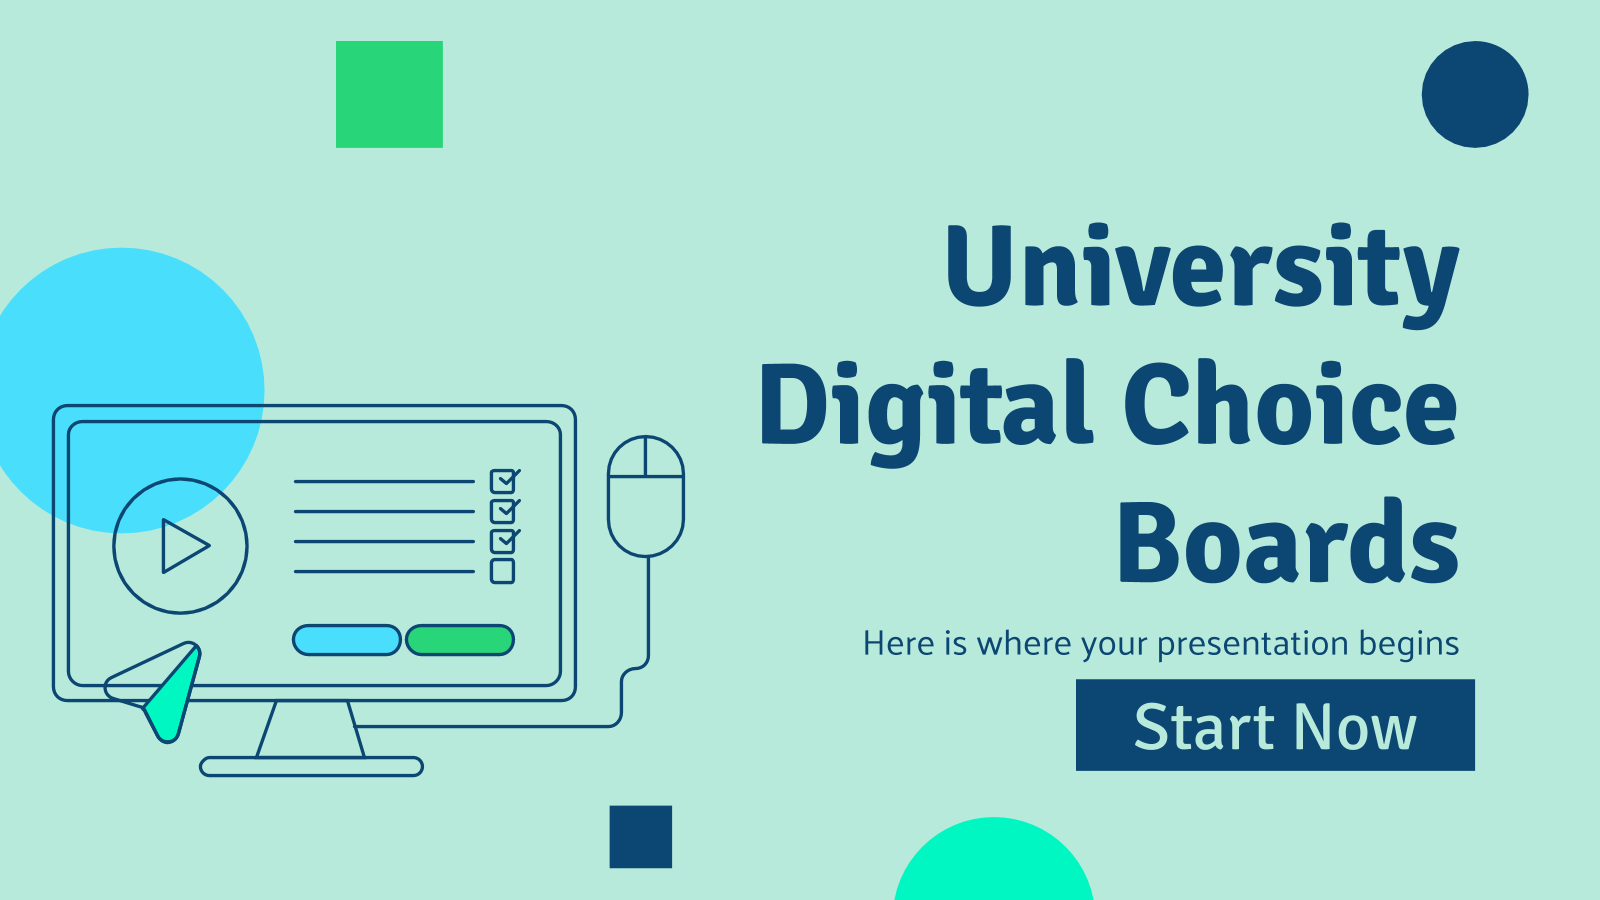 University Digital Choice Boards presentation template